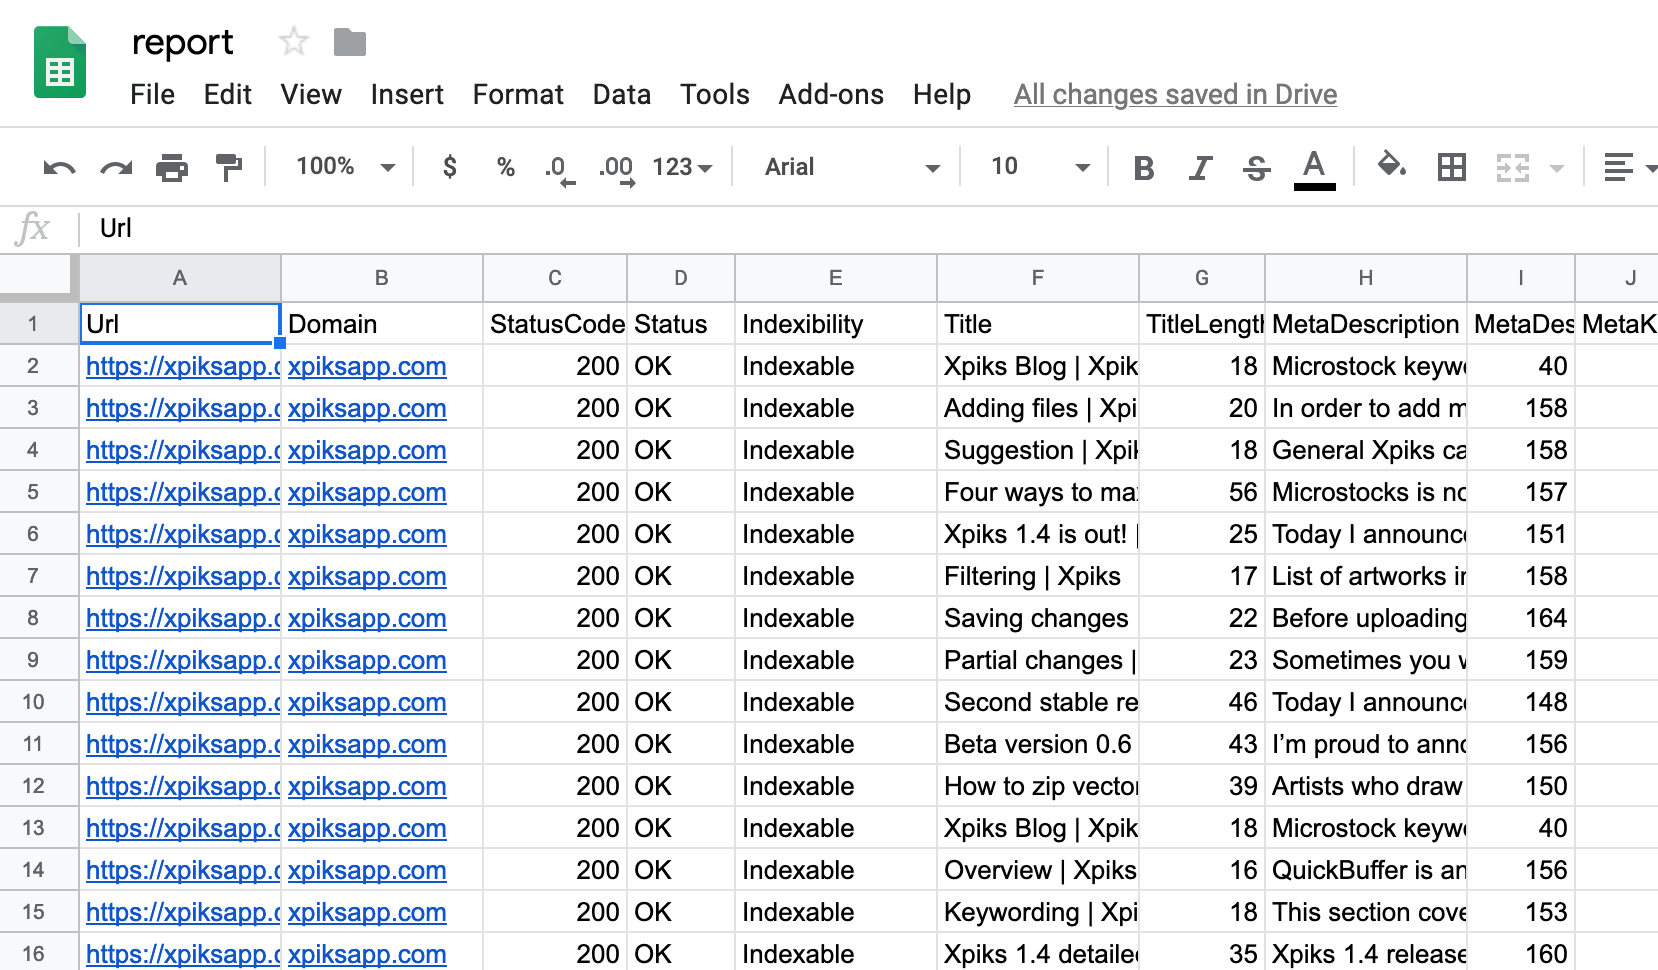 Google Sheets report